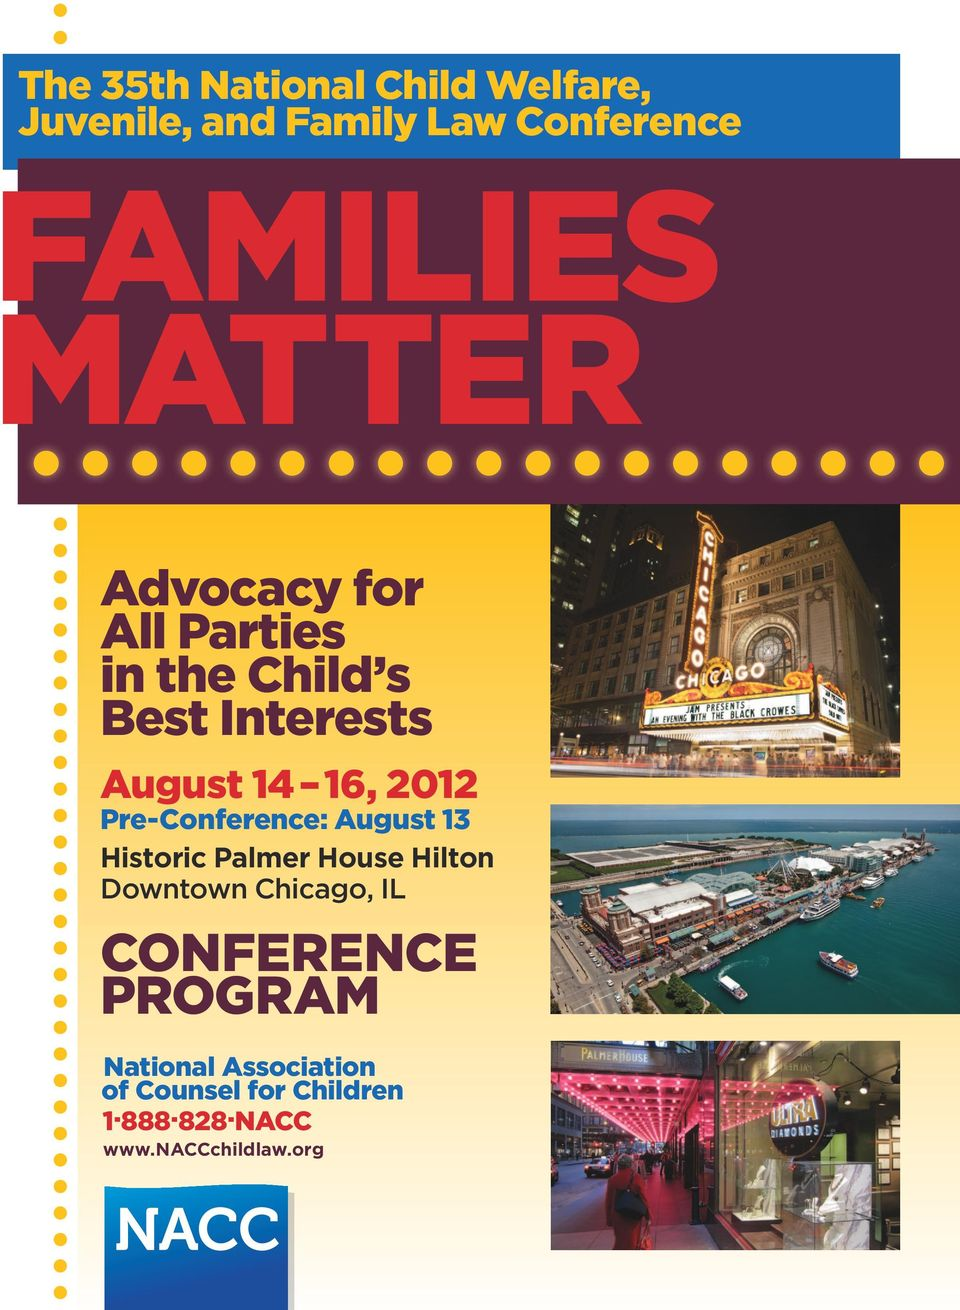 Pre-Conference: August 13 Historic Palmer House Hilton Downtown Chicago, IL